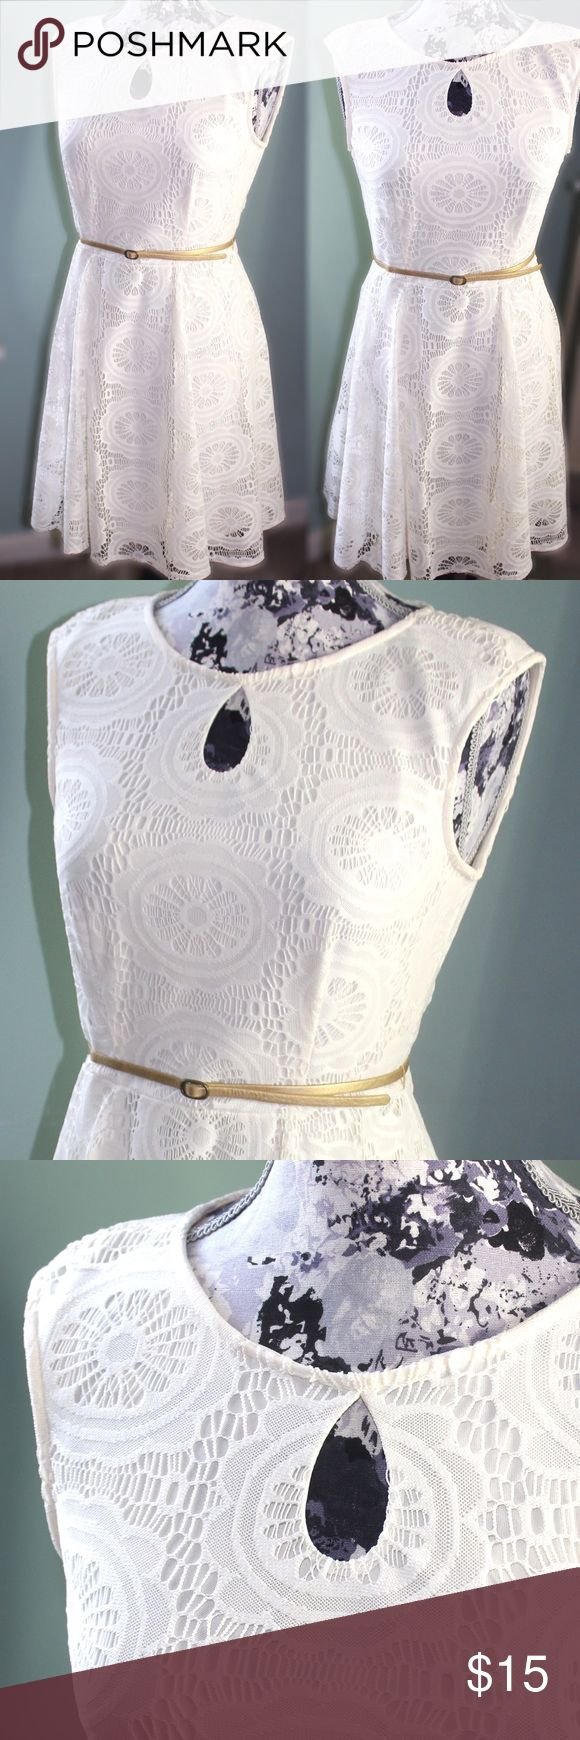 London Style Collection White Belted Dress Very cute dress! No flaws. Zips in back. Comes with thin gold belt Dresses Mini